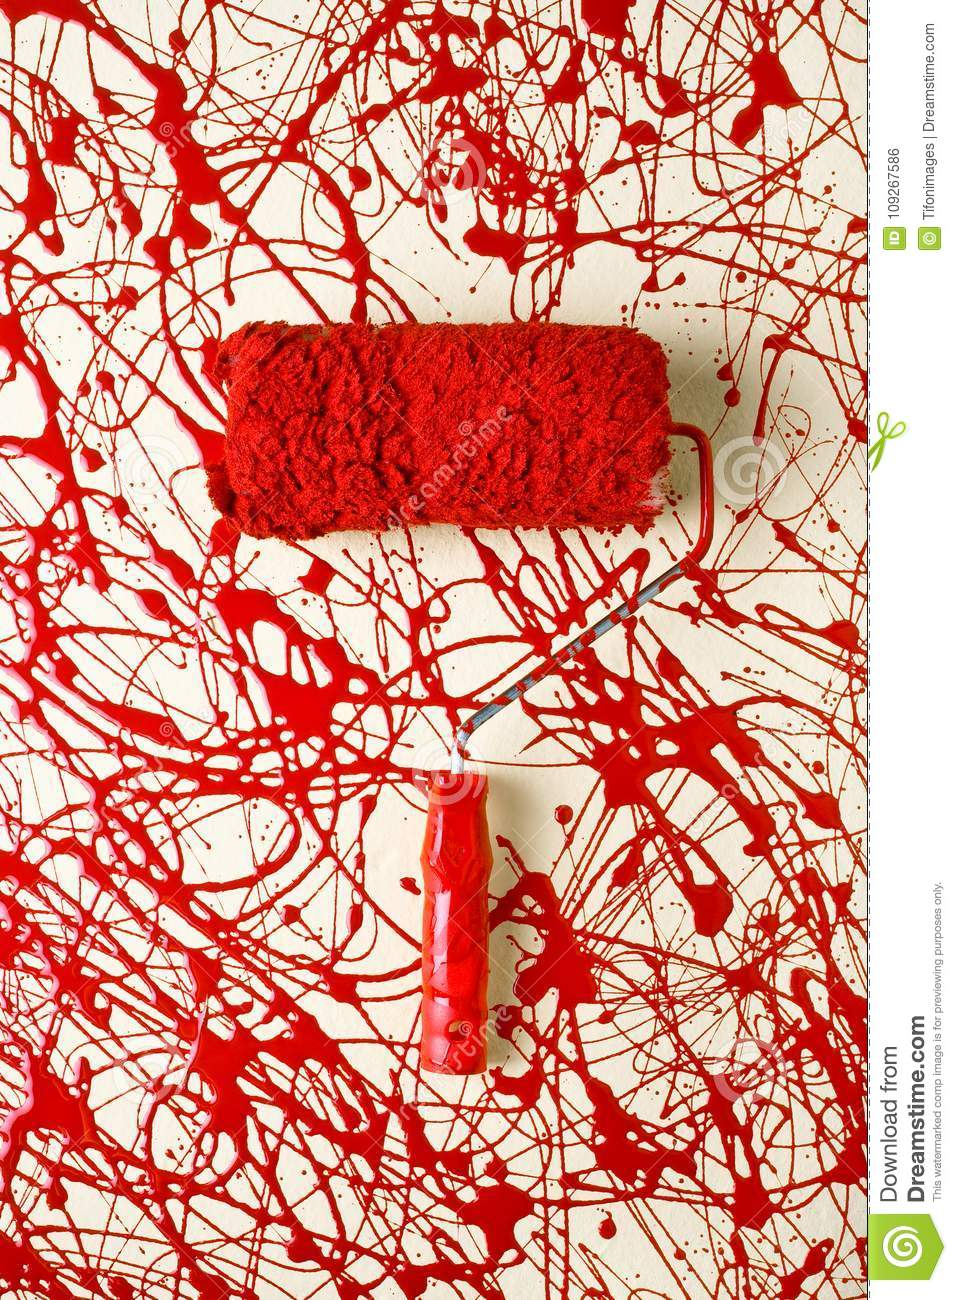 Roller Paint Brush Over Paint Stock Photo Image Of Design